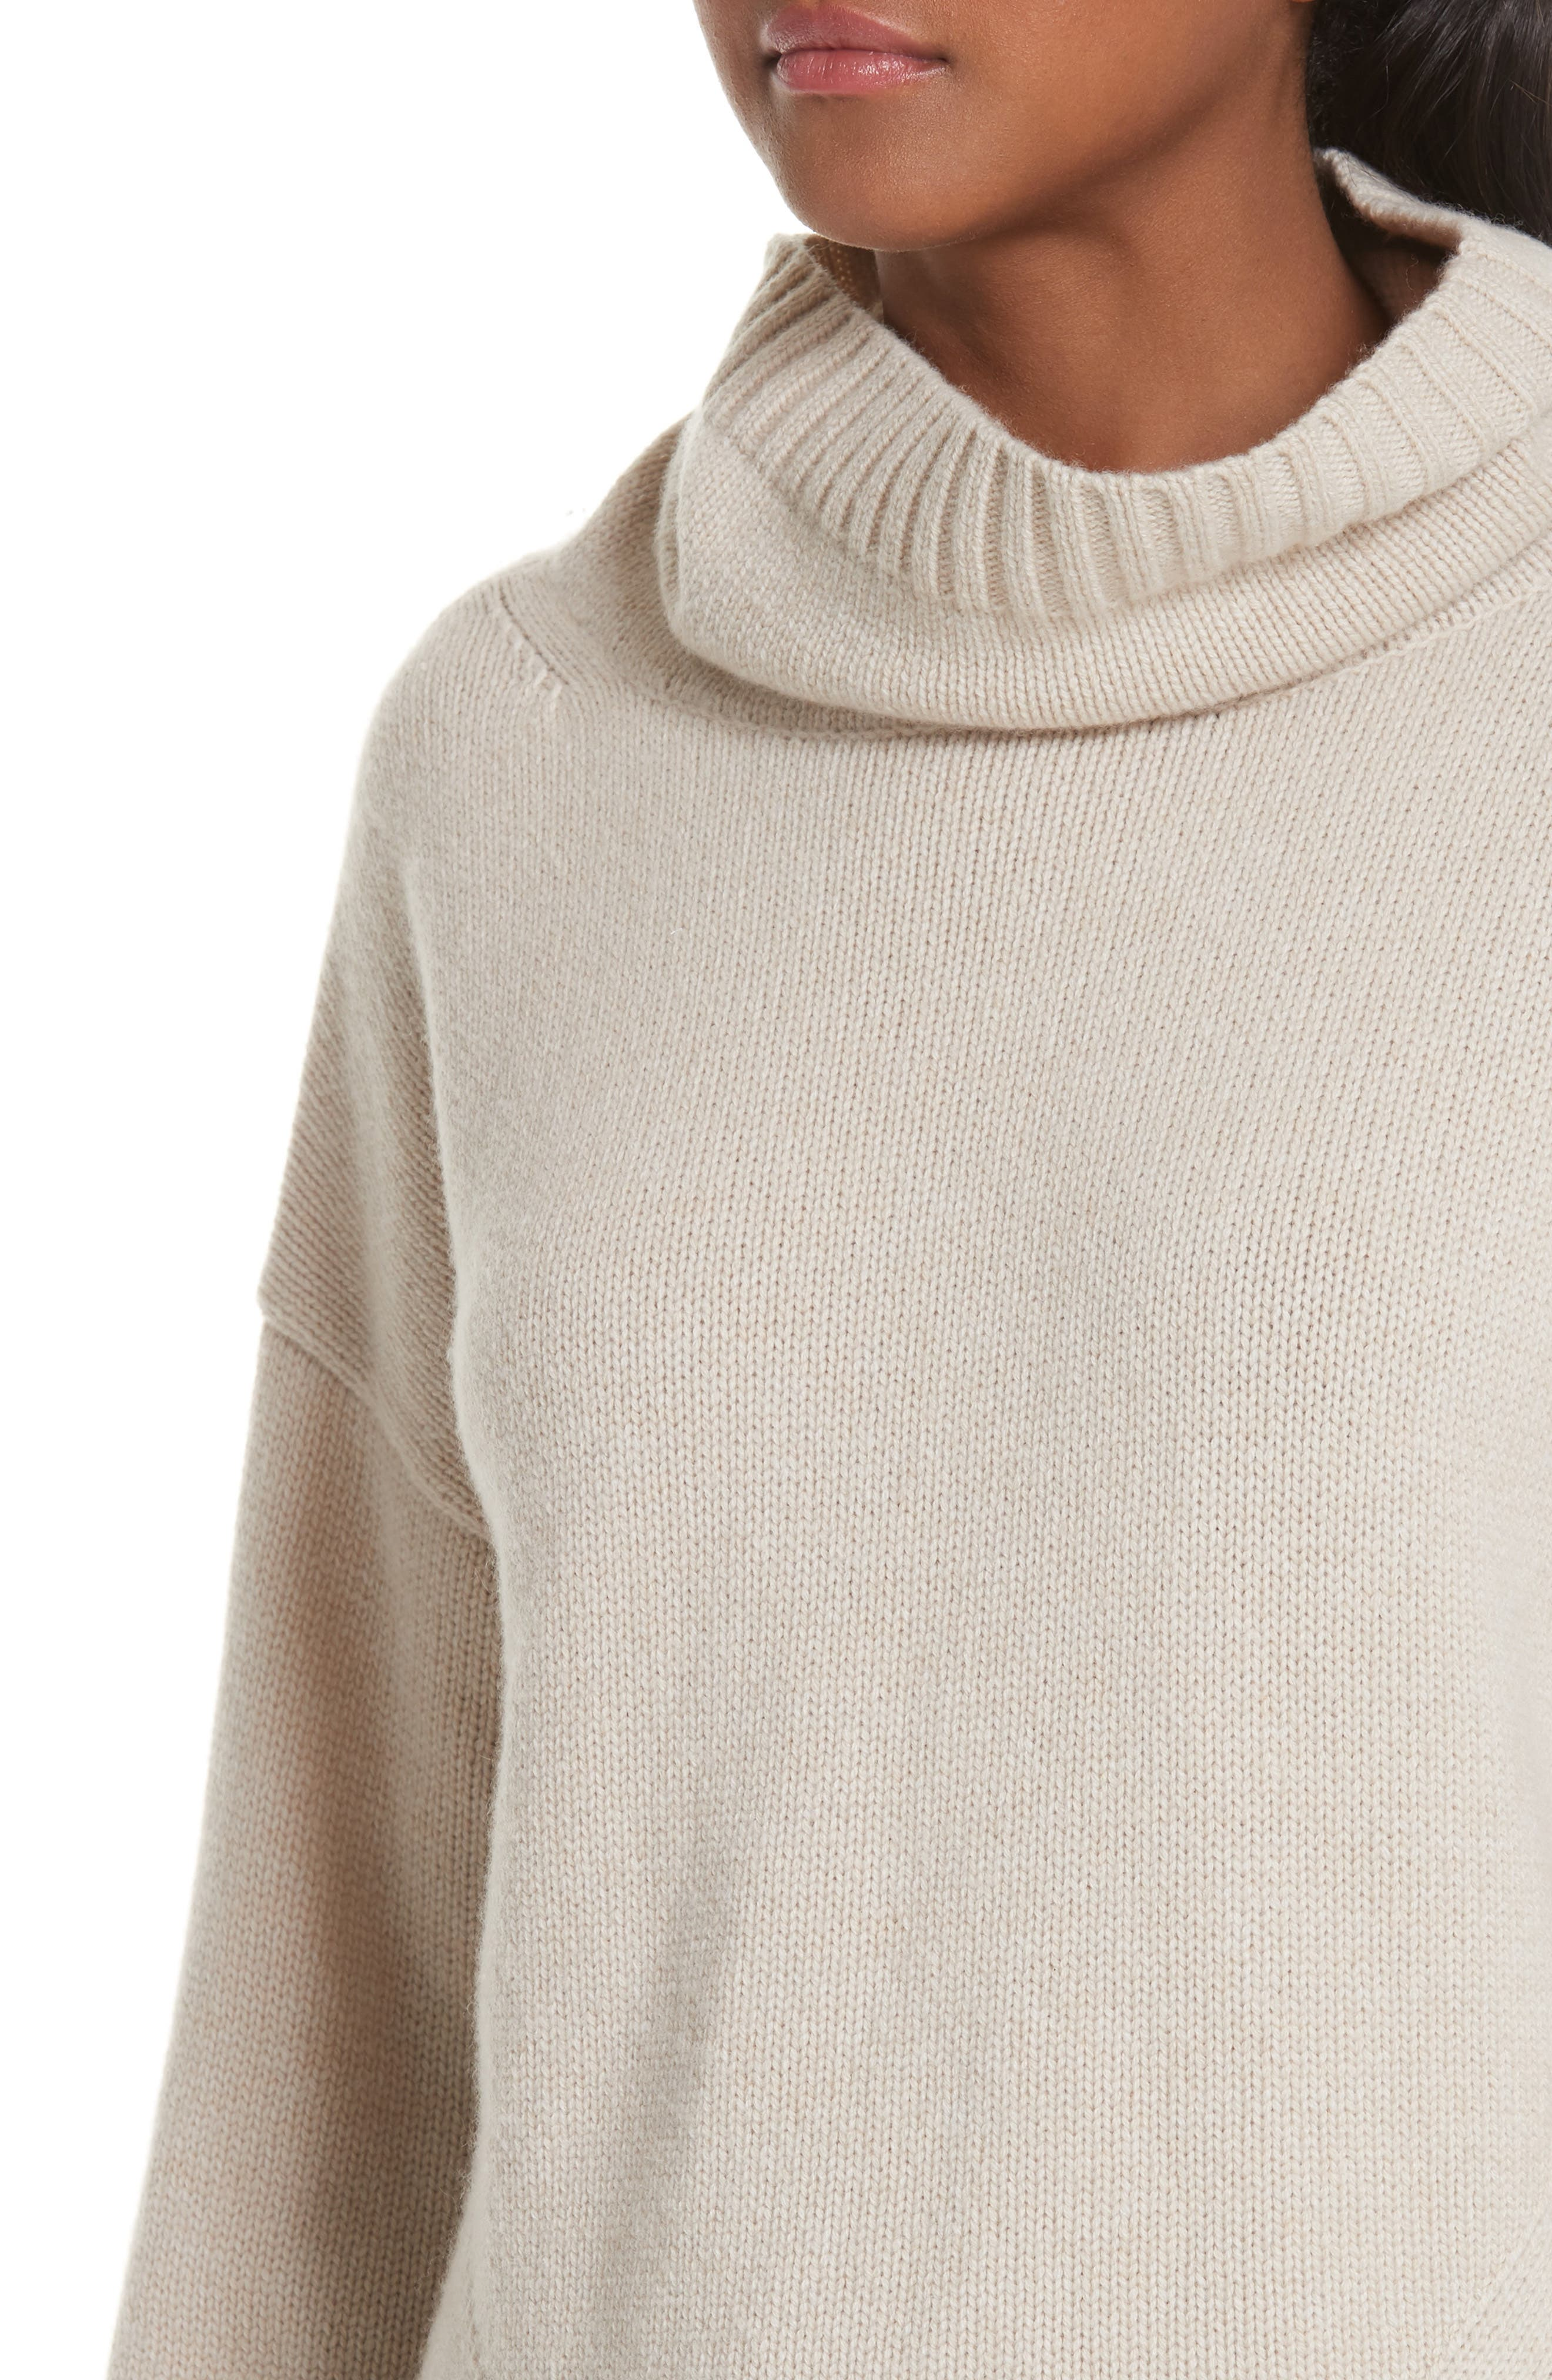 NILI LOTAN, Boyd Cashmere Cowl Neck Sweater, Alternate thumbnail 4, color, LIGHT TAUPE